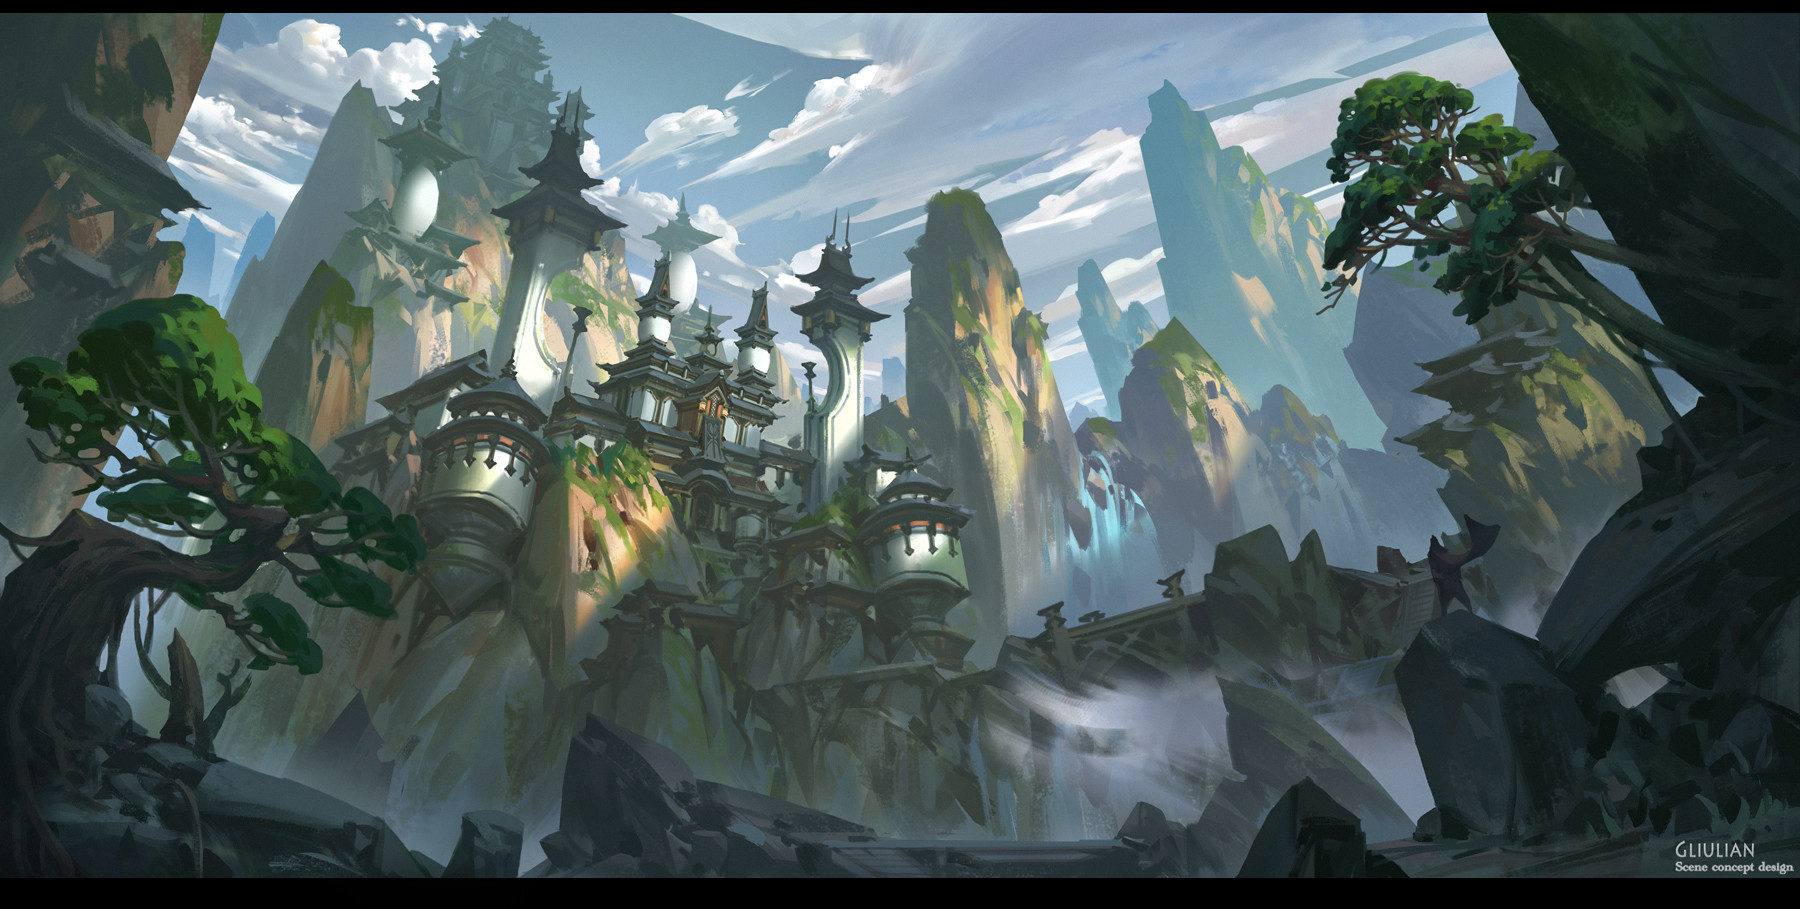 G Liulian digital painting concept art mountain city